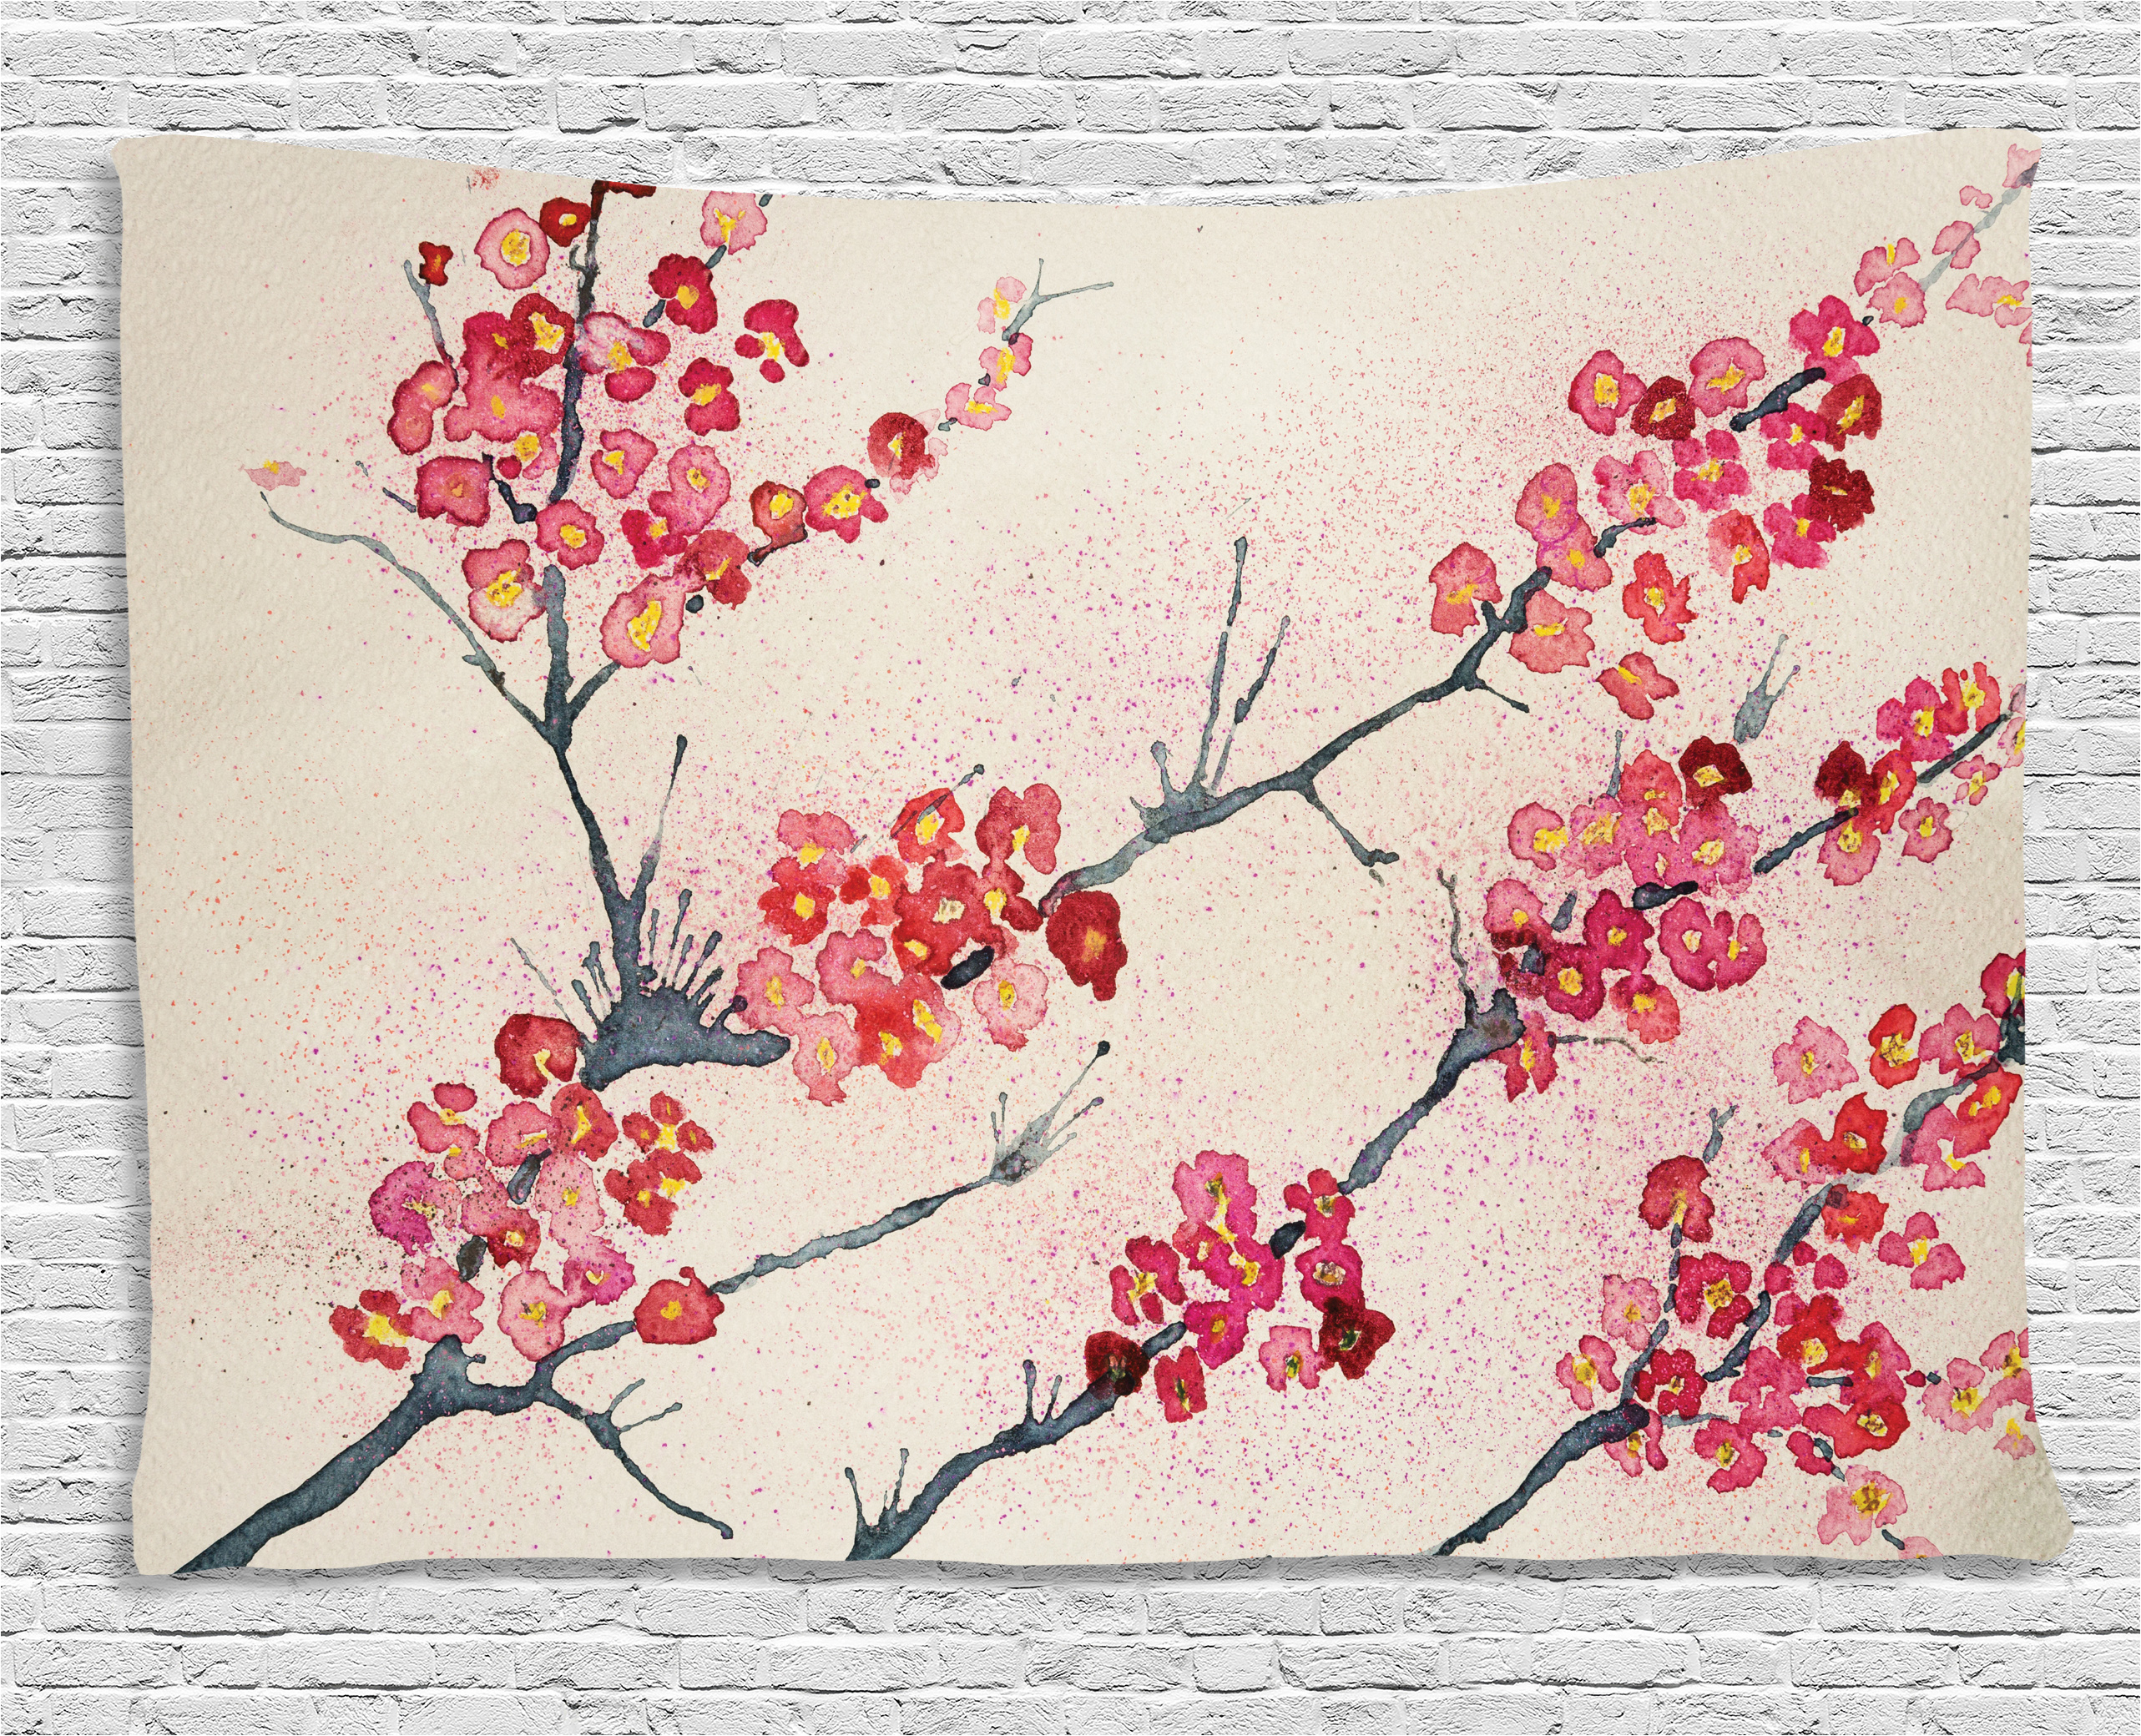 Curious asian style cherry blossom picuture authoritative message